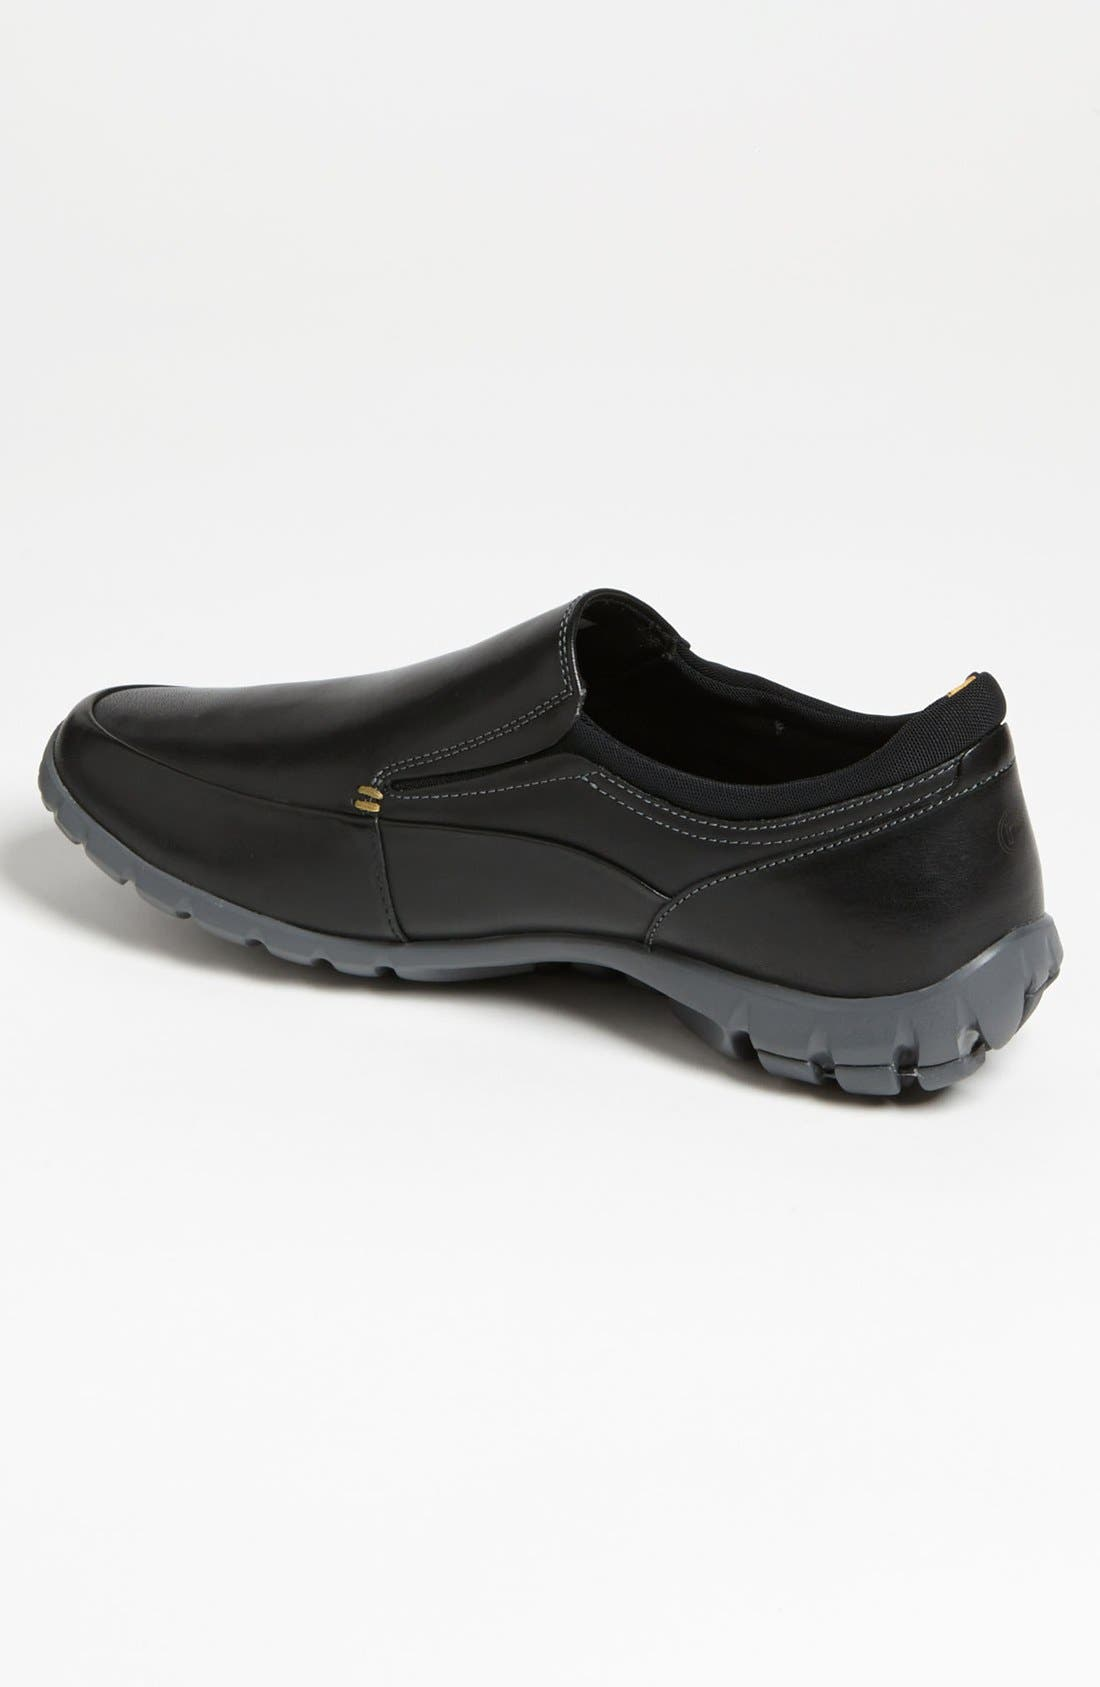 Alternate Image 2  - Rockport 'TruWalk - Zero' Slip-On